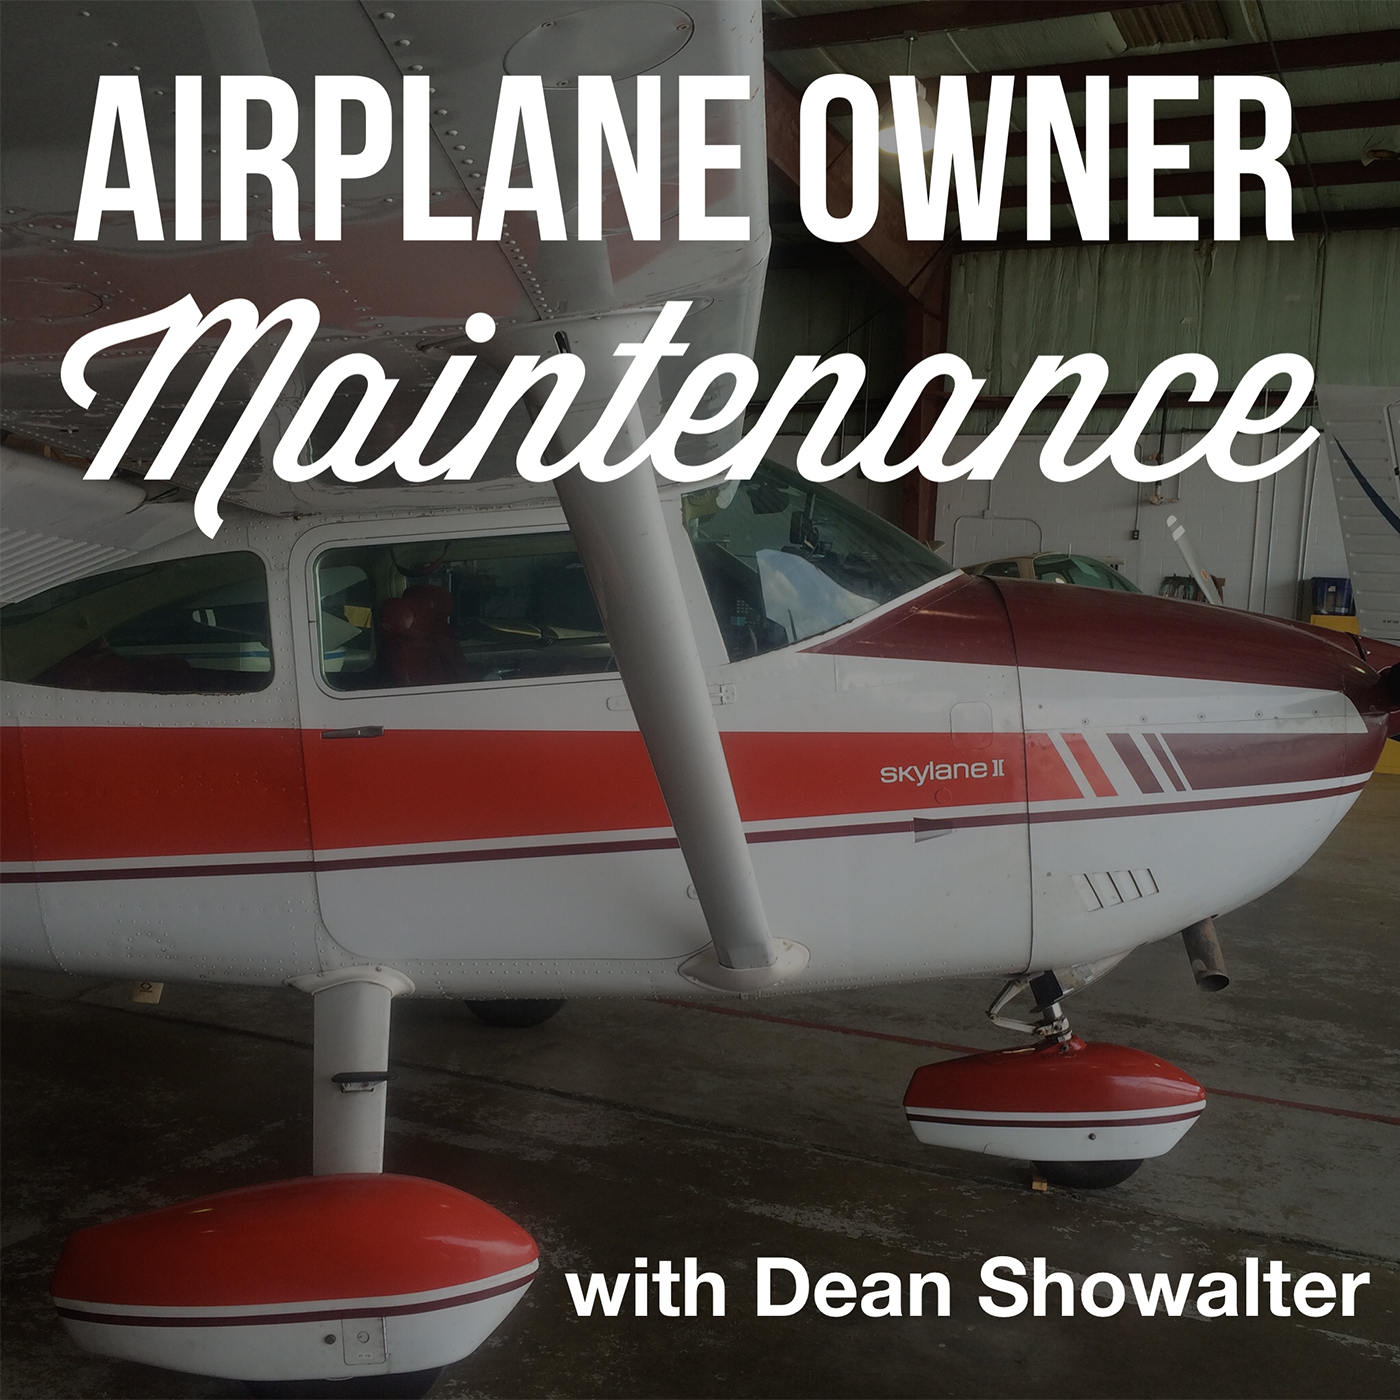 Airplane Owner Maintenance - By Dean Showalter